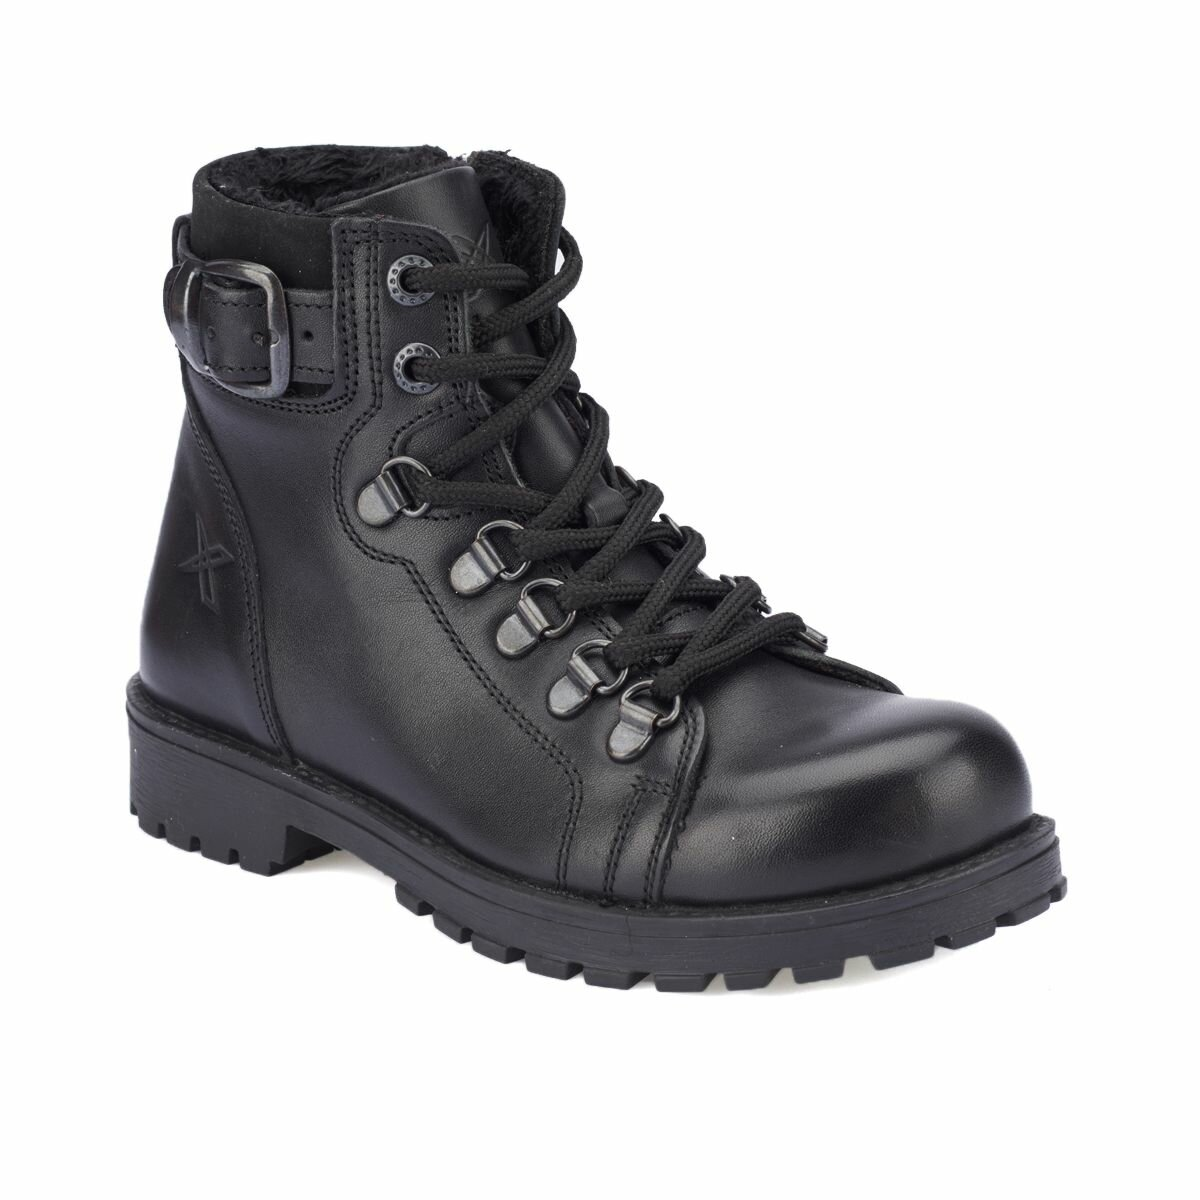 FLO SARDONE LEATHER Black Male Child Boots KINETIX